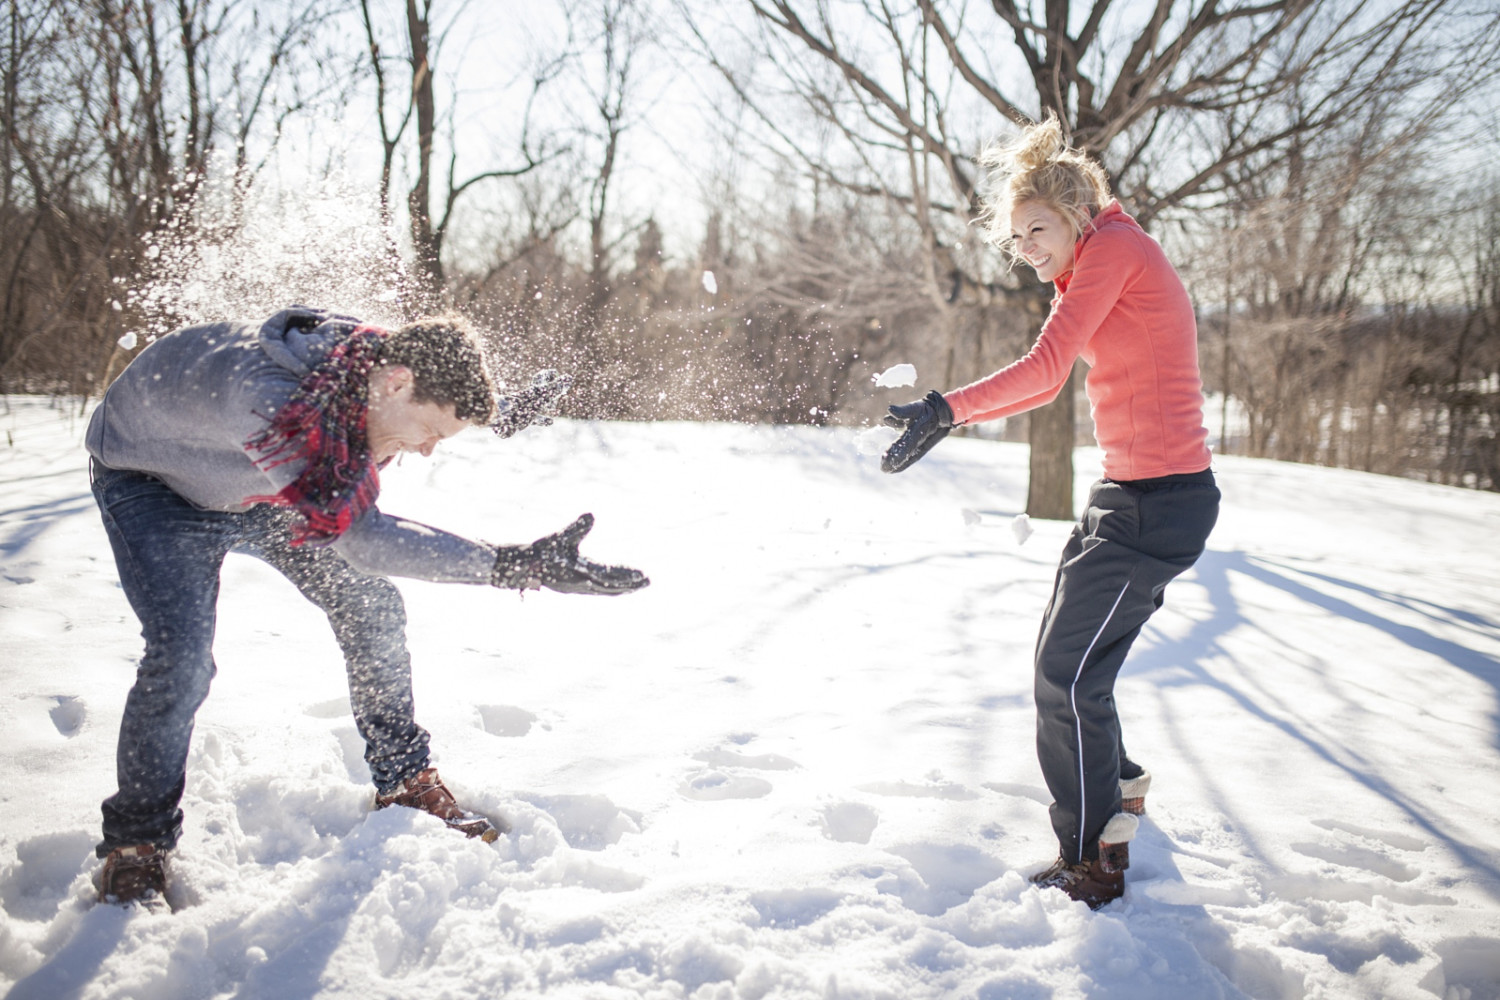 Simply Sellable: Why this Snowball Fight Photo Sells